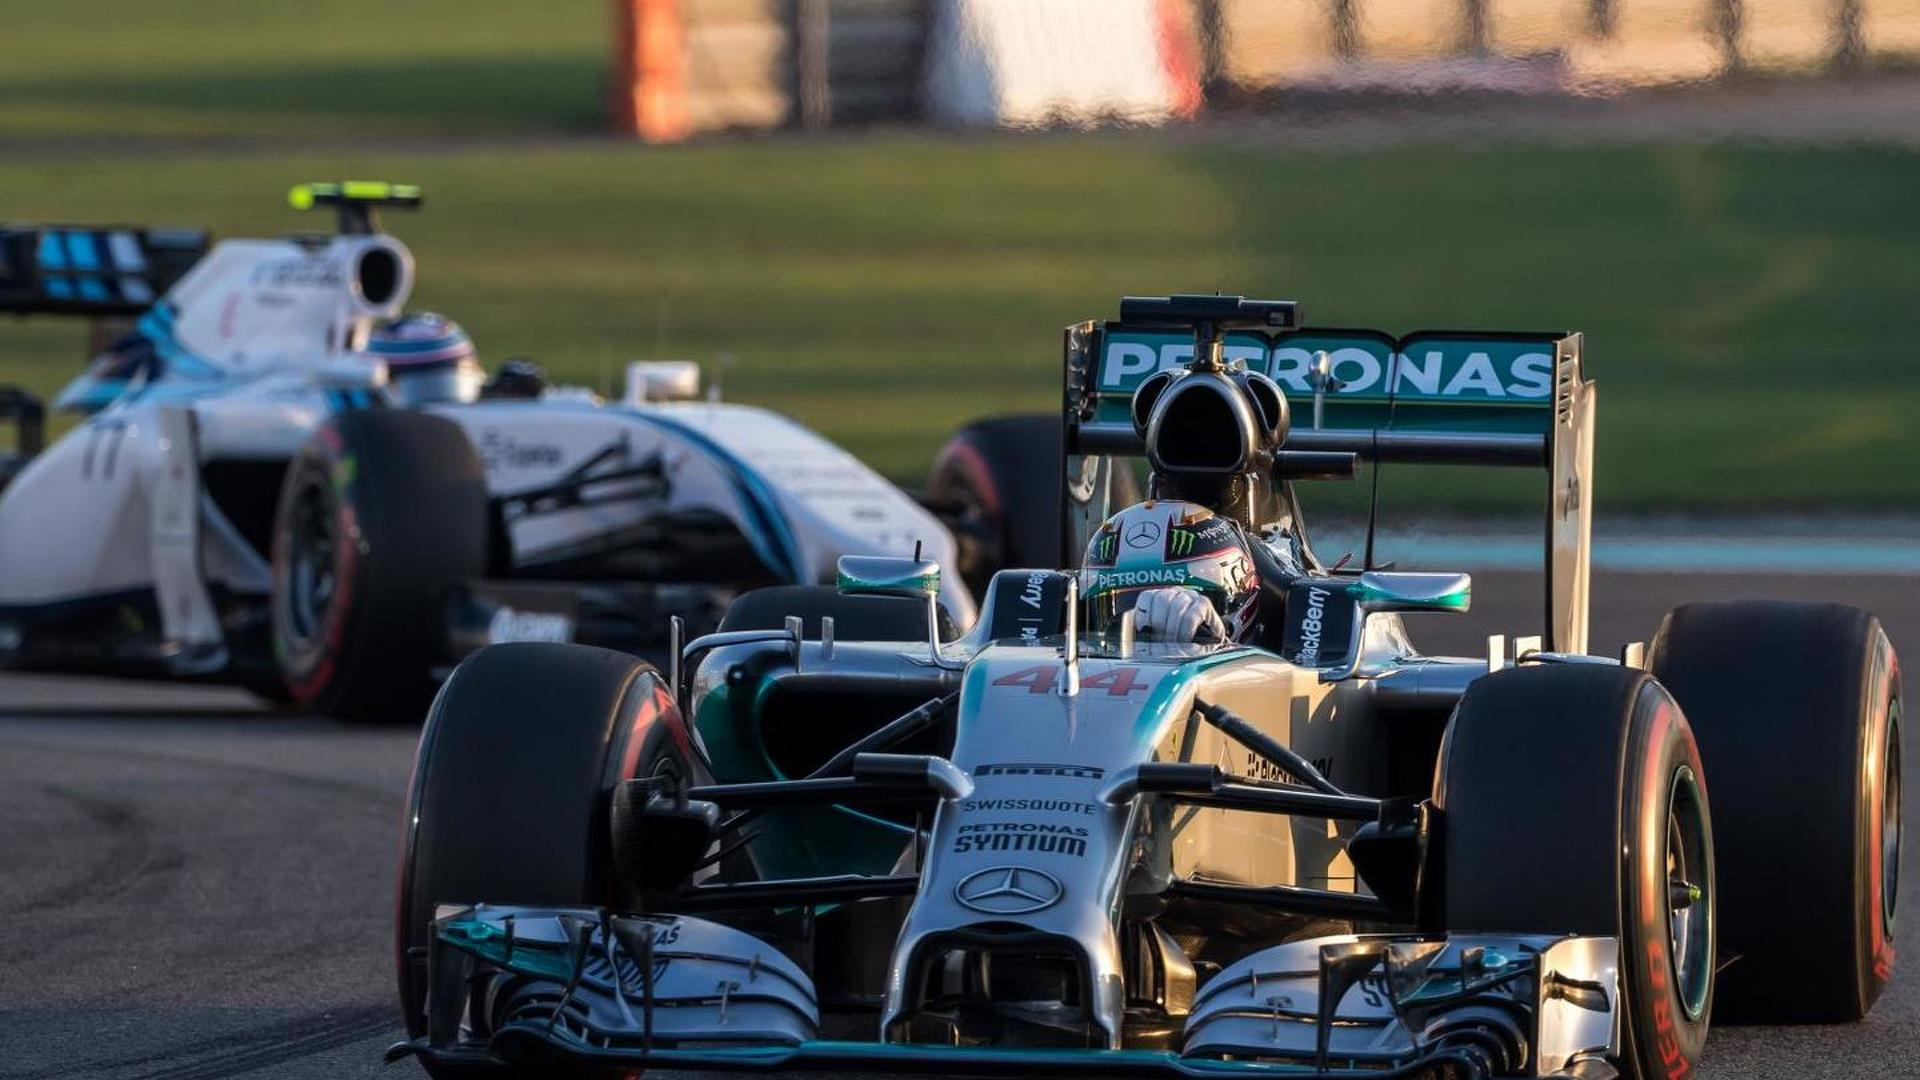 Mercedes 'surprised' by 2014 dominance